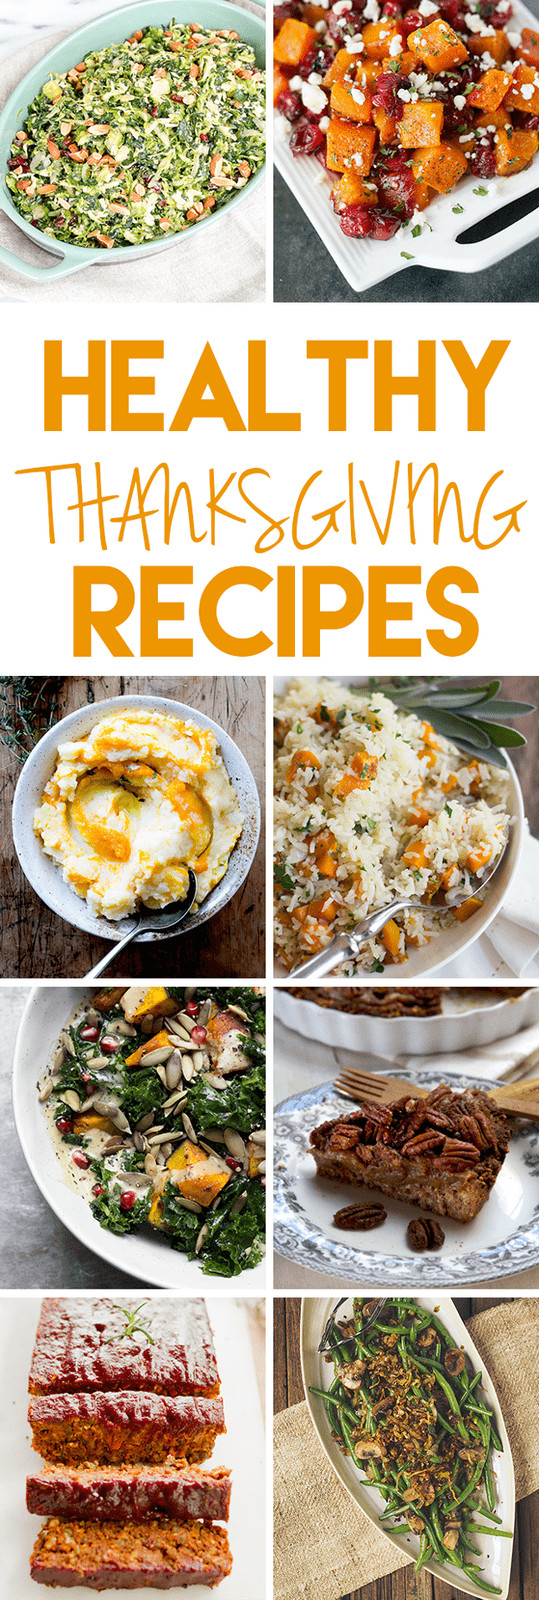 Healthy Thanksgiving Recipes  Healthy Thanksgiving Recipes gluten free ve arian